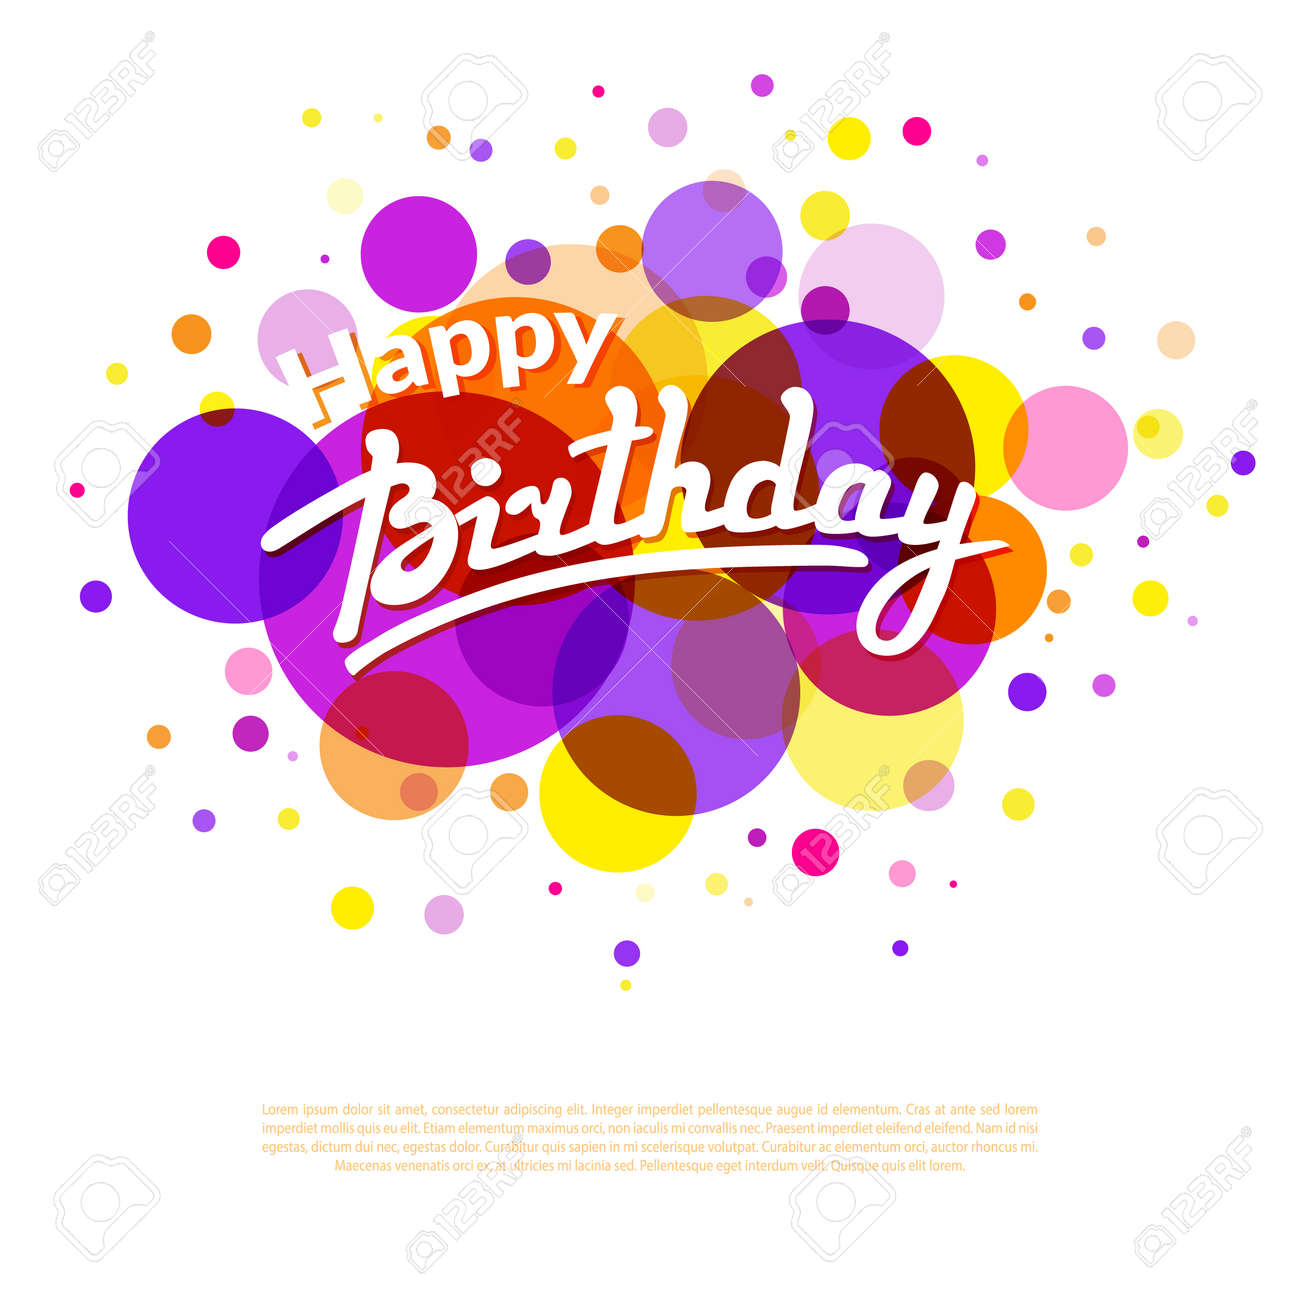 Happy birthday greeting card template on background with colorful happy birthday greeting card template on background with colorful circles and textbox stock vector 53382746 pronofoot35fo Image collections